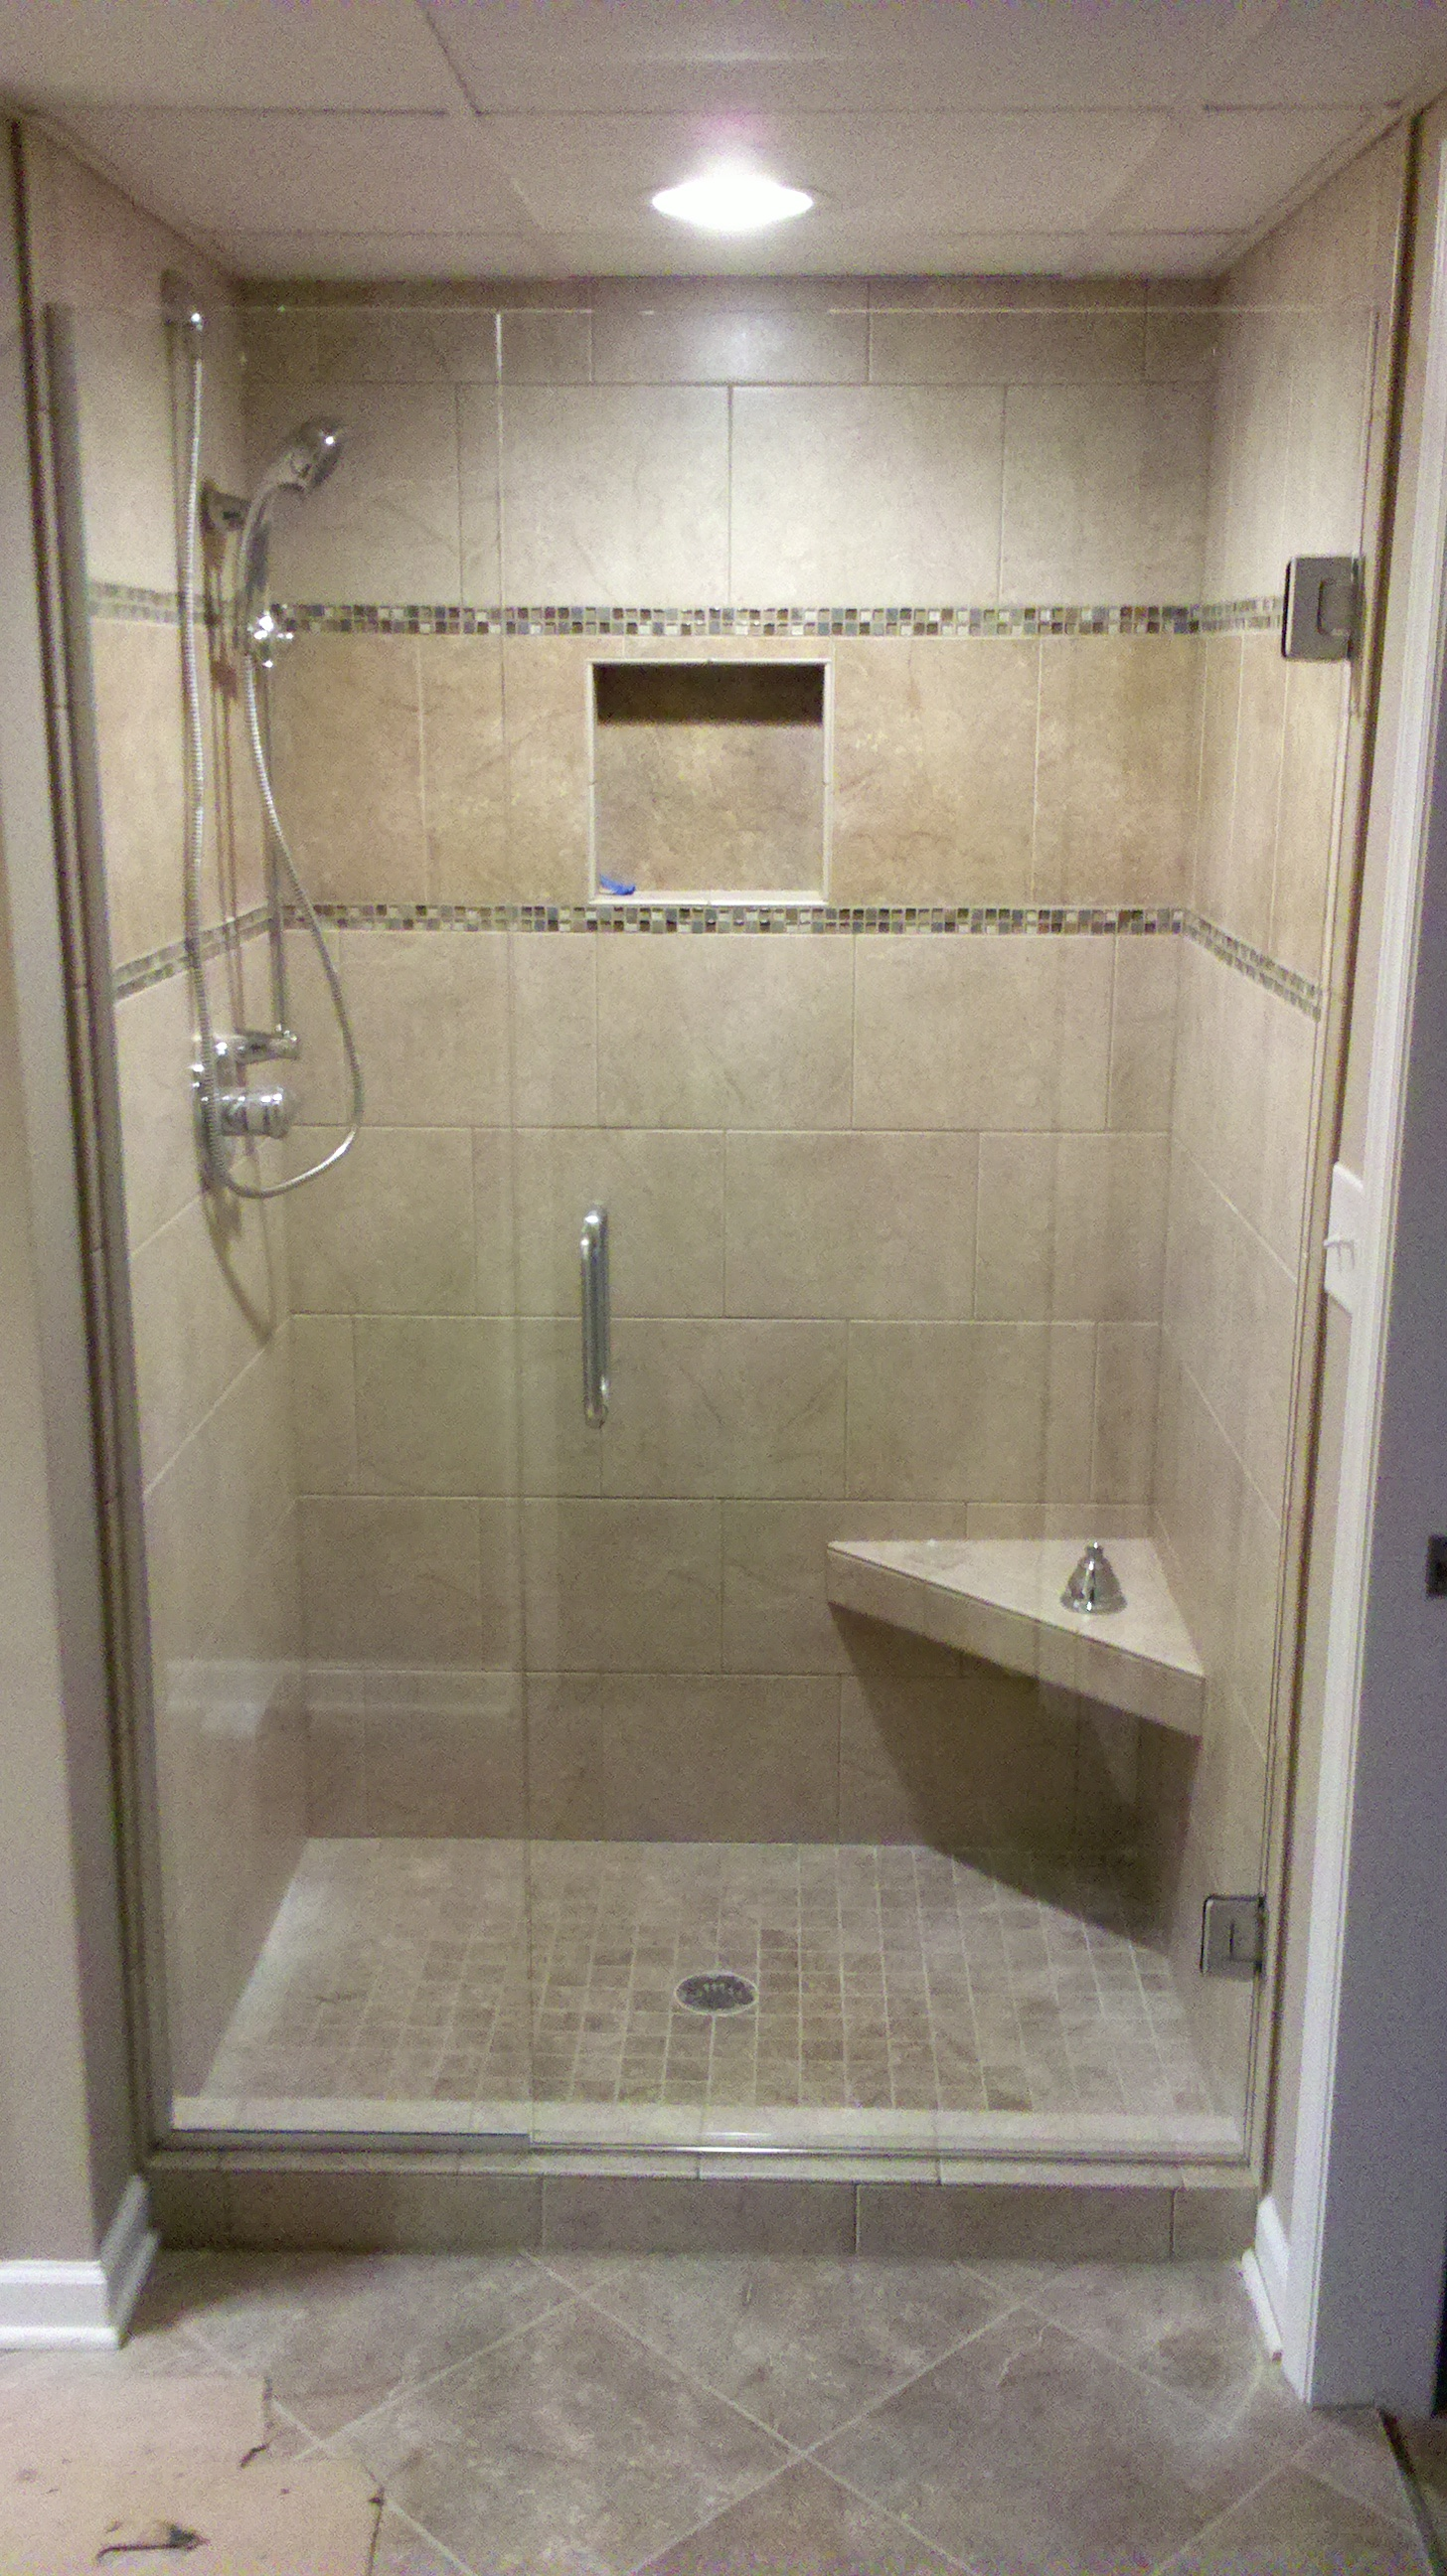 New shower installation performed by home remodeling company Hedrick Creative Building, LLC in Lexington, NC